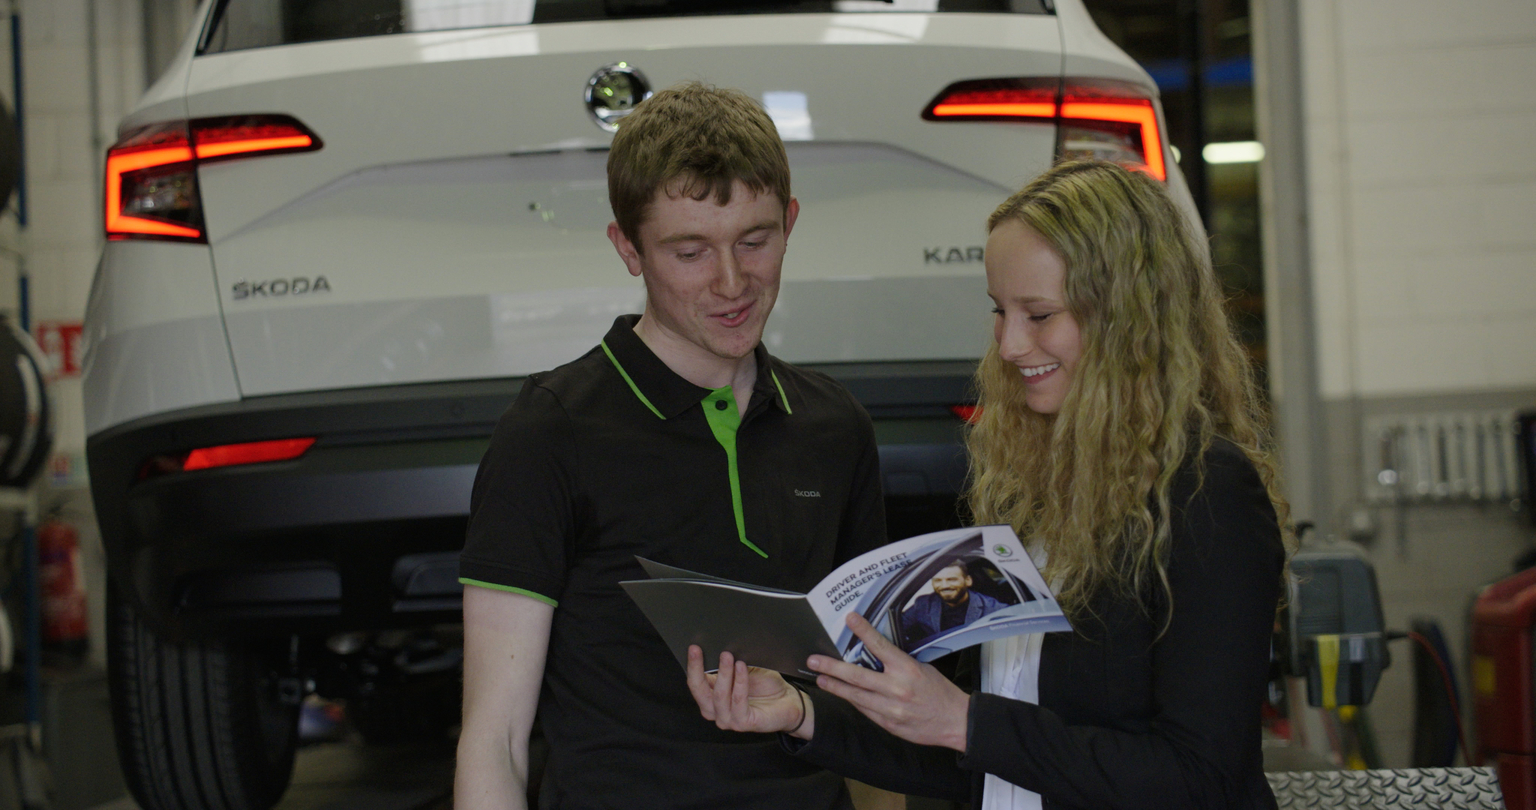 30 New Jobs with ŠKODA Ireland Recruitment Drive